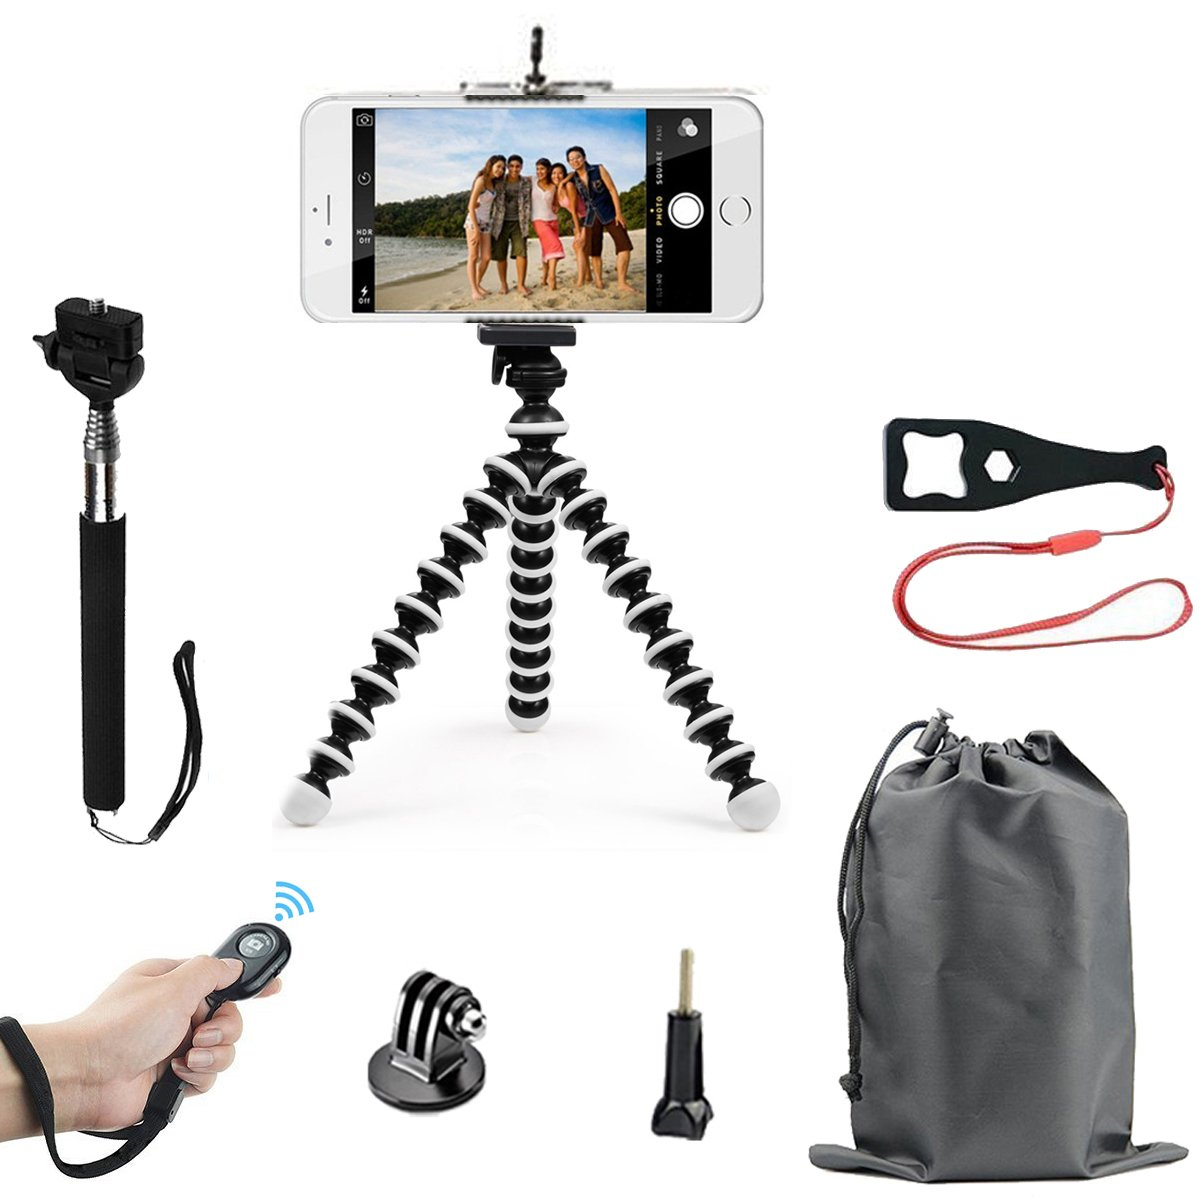 SMILEPOWO Lightweight Mini Tripod And Universal Smartphone Tripod Adapter,Phone Tripod, Selfie Stick Tripod,Phone Shutter Remote Control For iPhone, Android Phone,Any Smartphone,GOPRO HERO Series